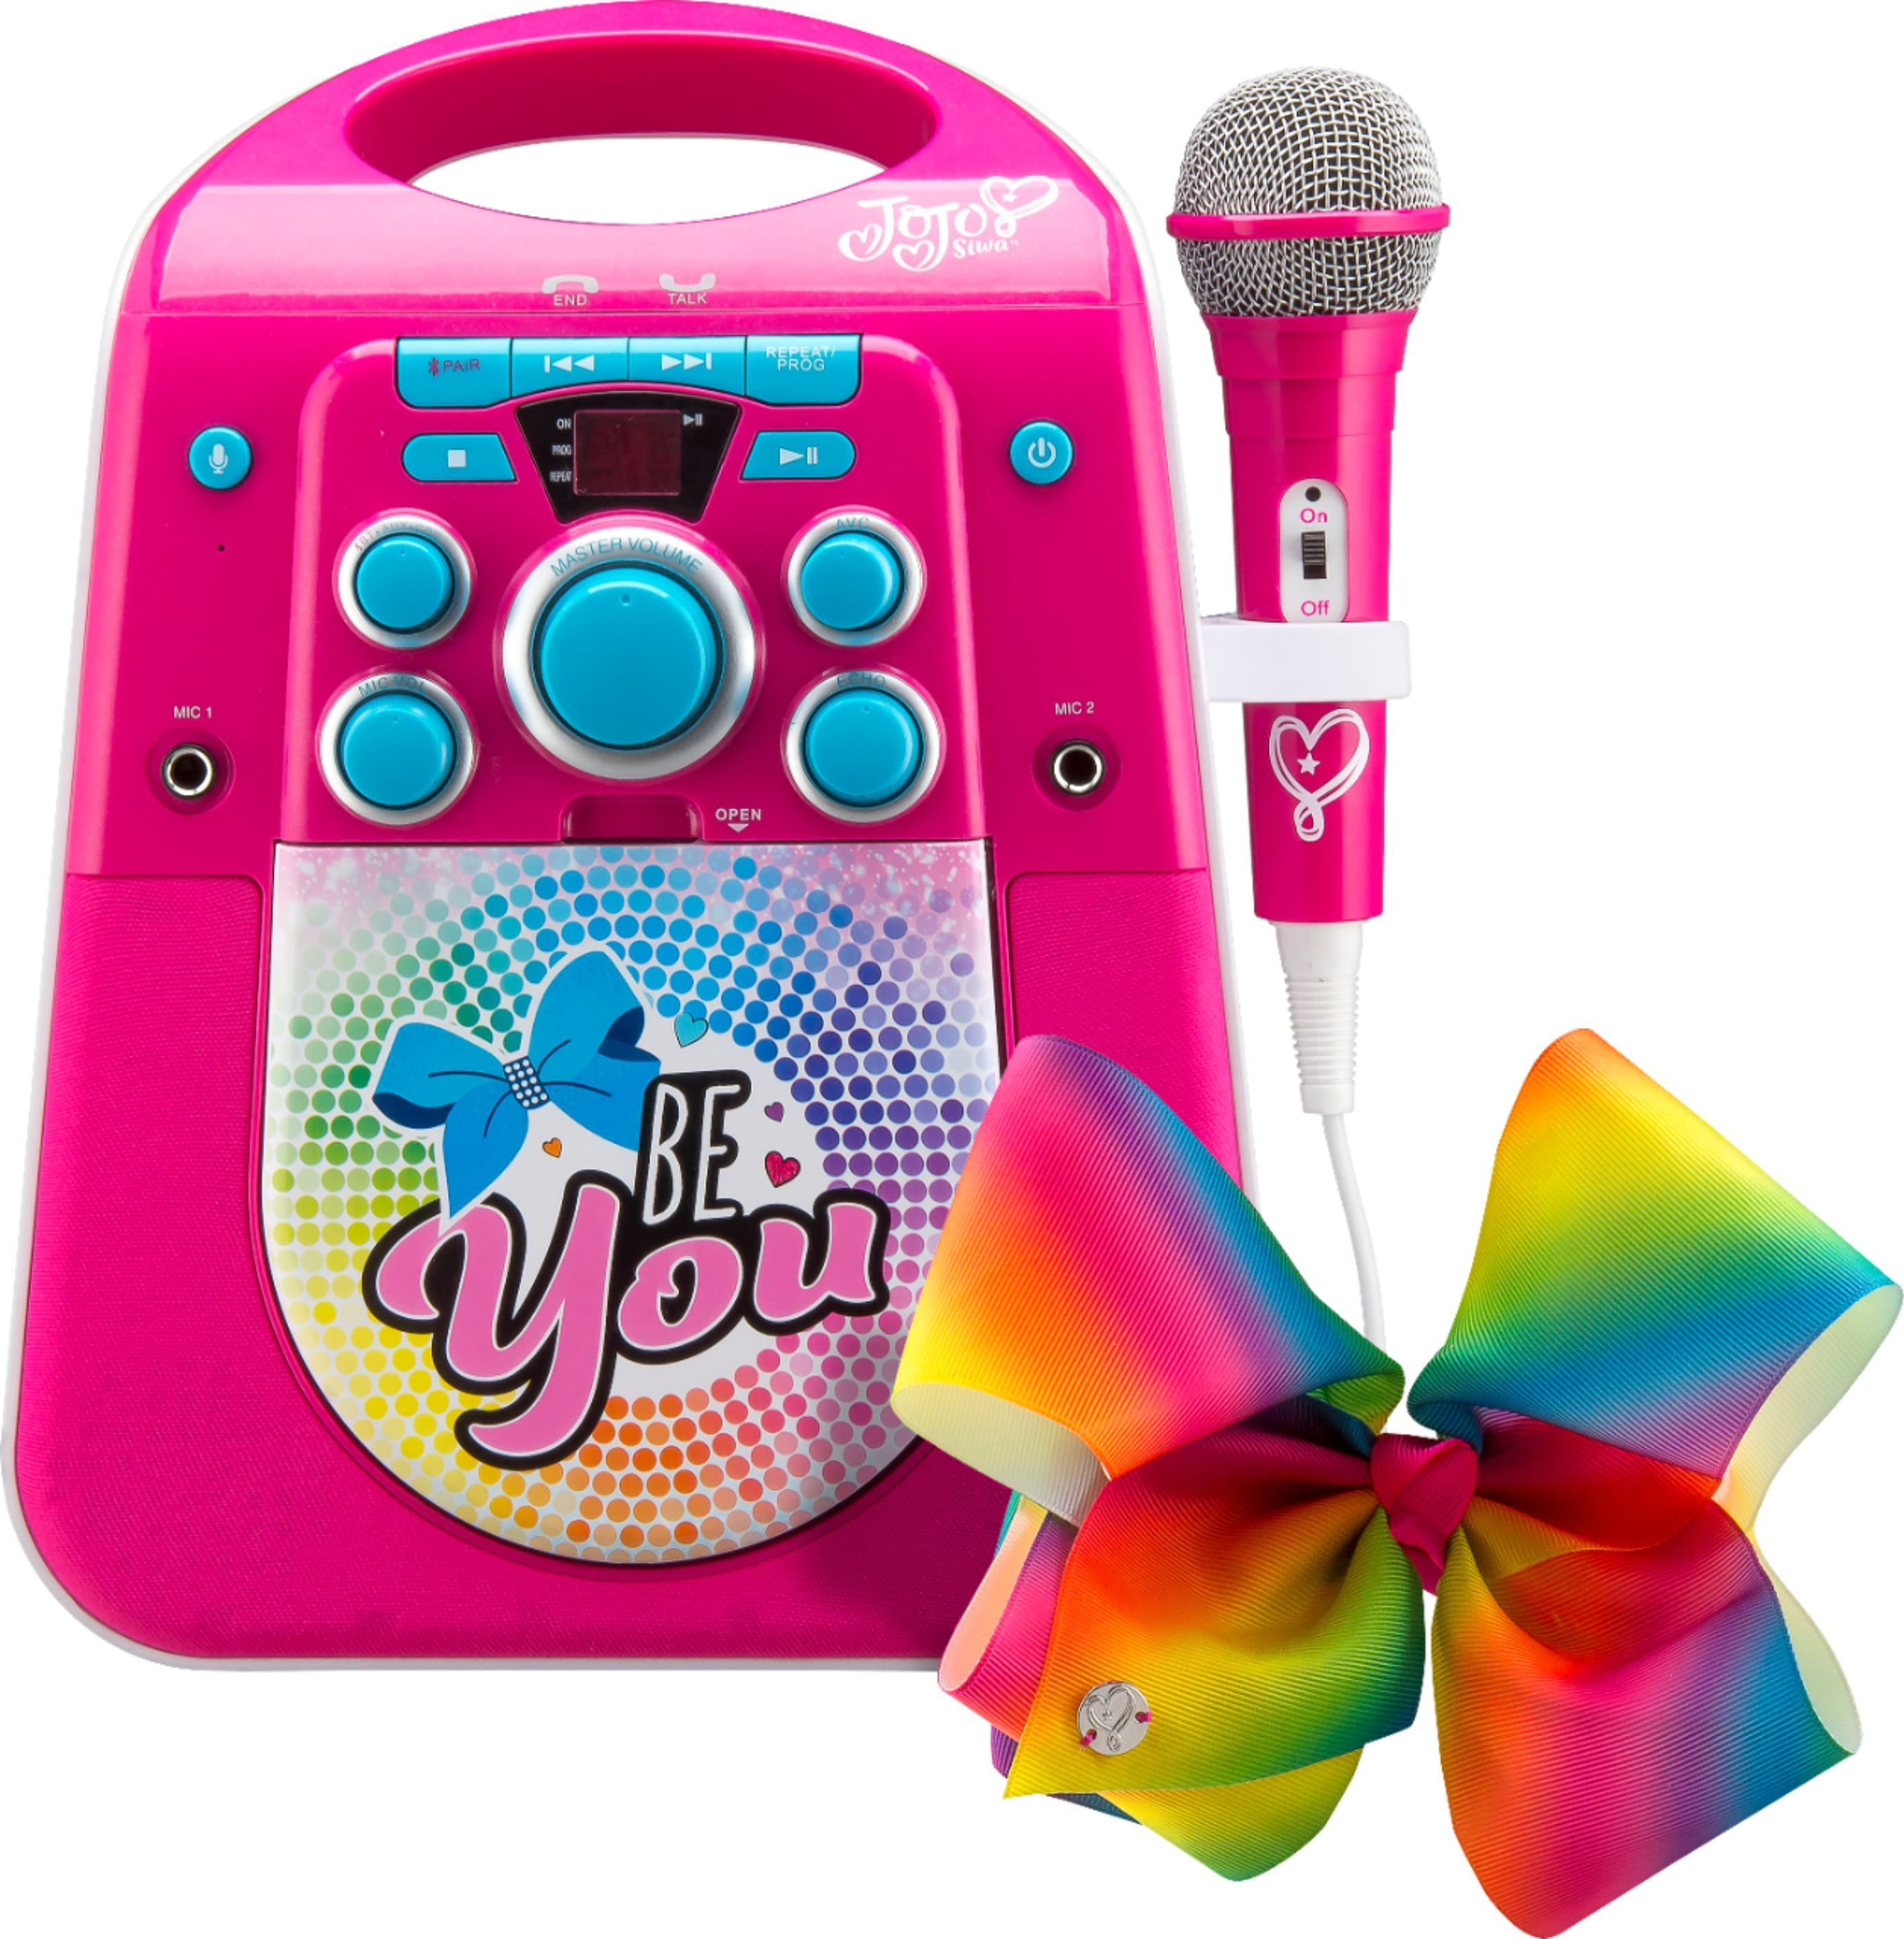 Shop eKids JoJo Siwa Portable Karaoke System Pink at Best Buy. Find low everyday prices and buy online for delivery or in-store pick-up. Price Match Guarantee. #karaokesystem Shop eKids JoJo Siwa Portable Karaoke System Pink at Best Buy. Find low everyday prices and buy online for delivery or in-store pick-up. Price Match Guarantee. #karaokesystem